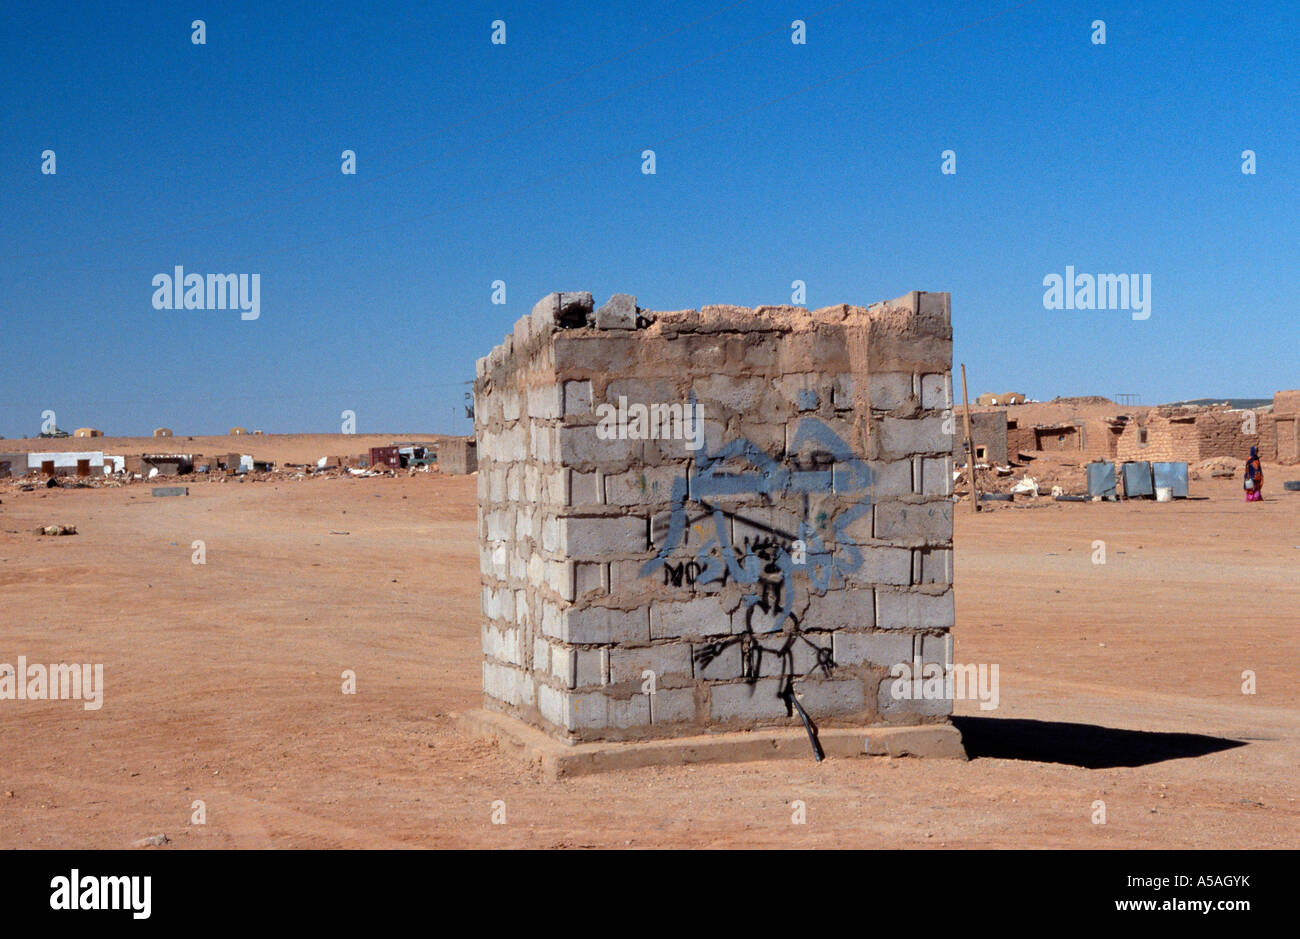 A view of a refugee camp in Tindouf Western Algeria - Stock Image